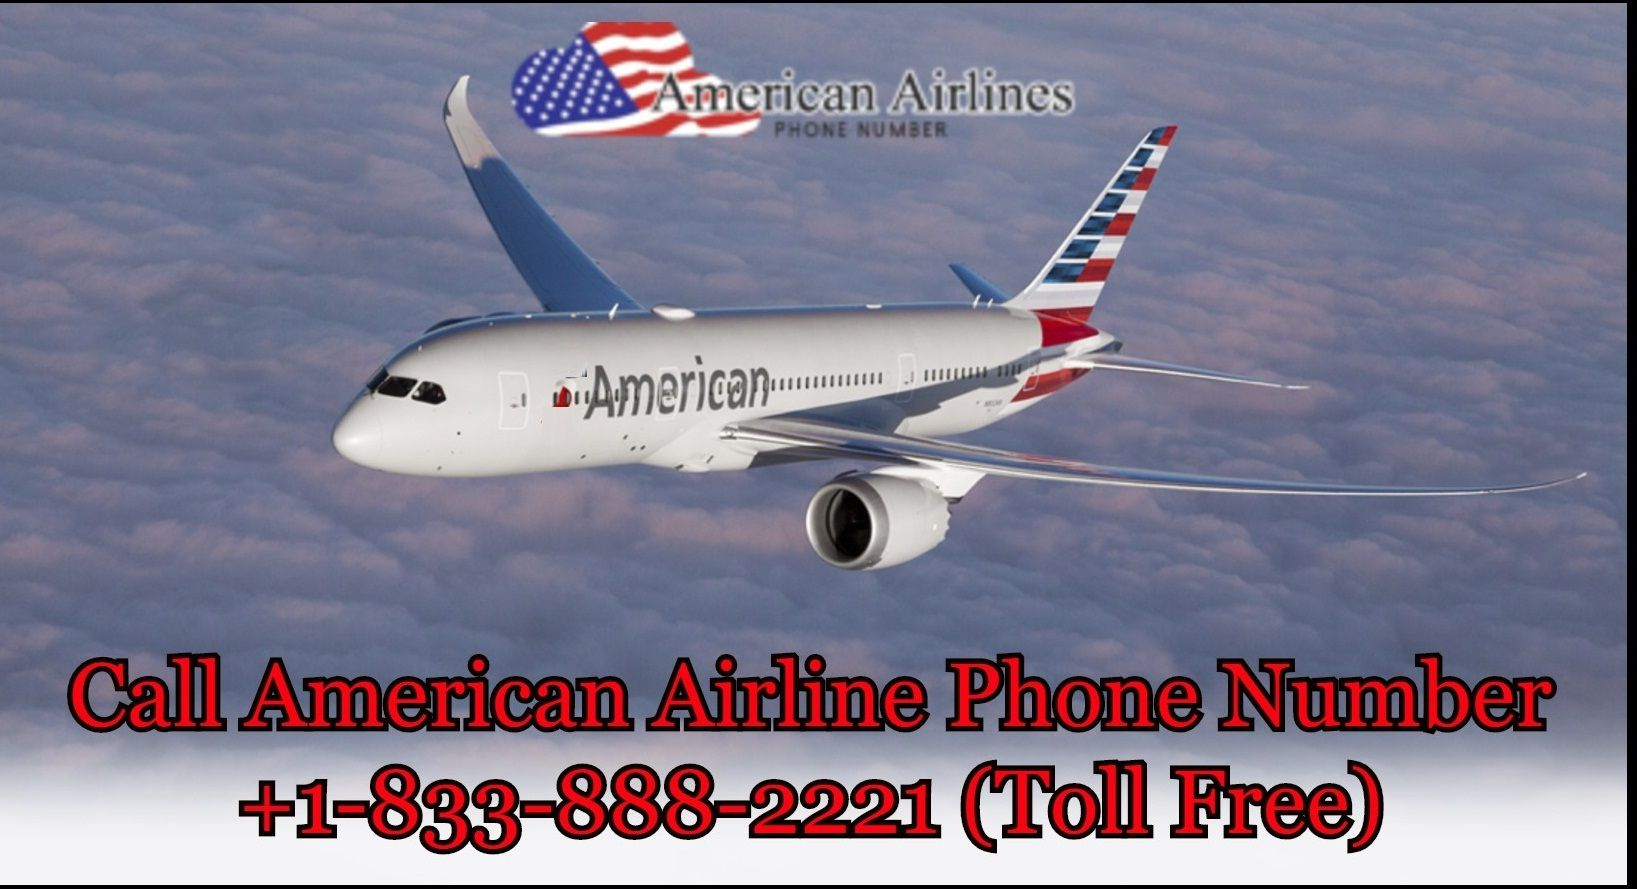 Call American Airlines Number Phone Number +1(833)888